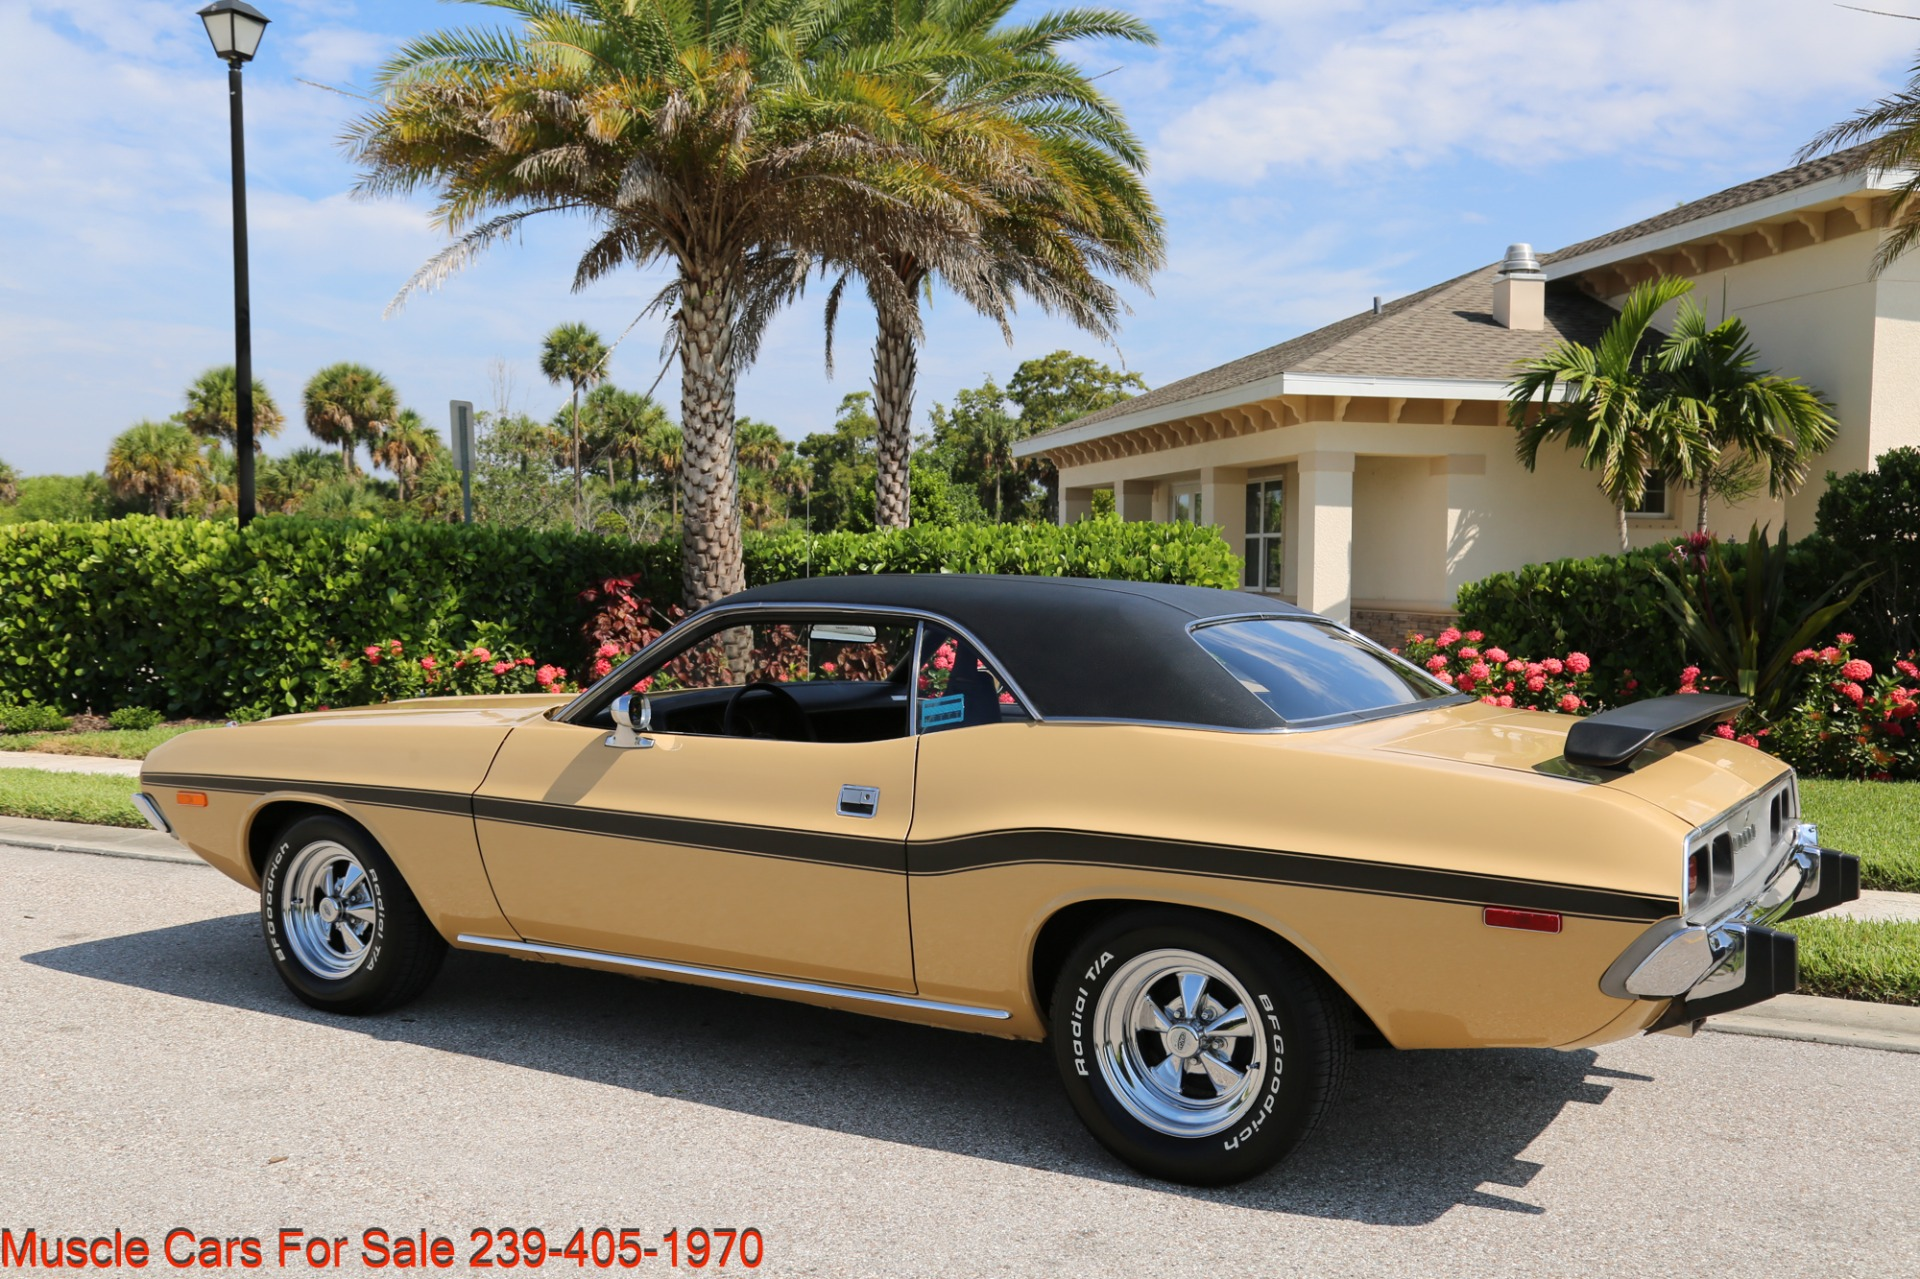 Used 1974 Dodge Challenger V8  Auto for sale $34,000 at Muscle Cars for Sale Inc. in Fort Myers FL 33912 6